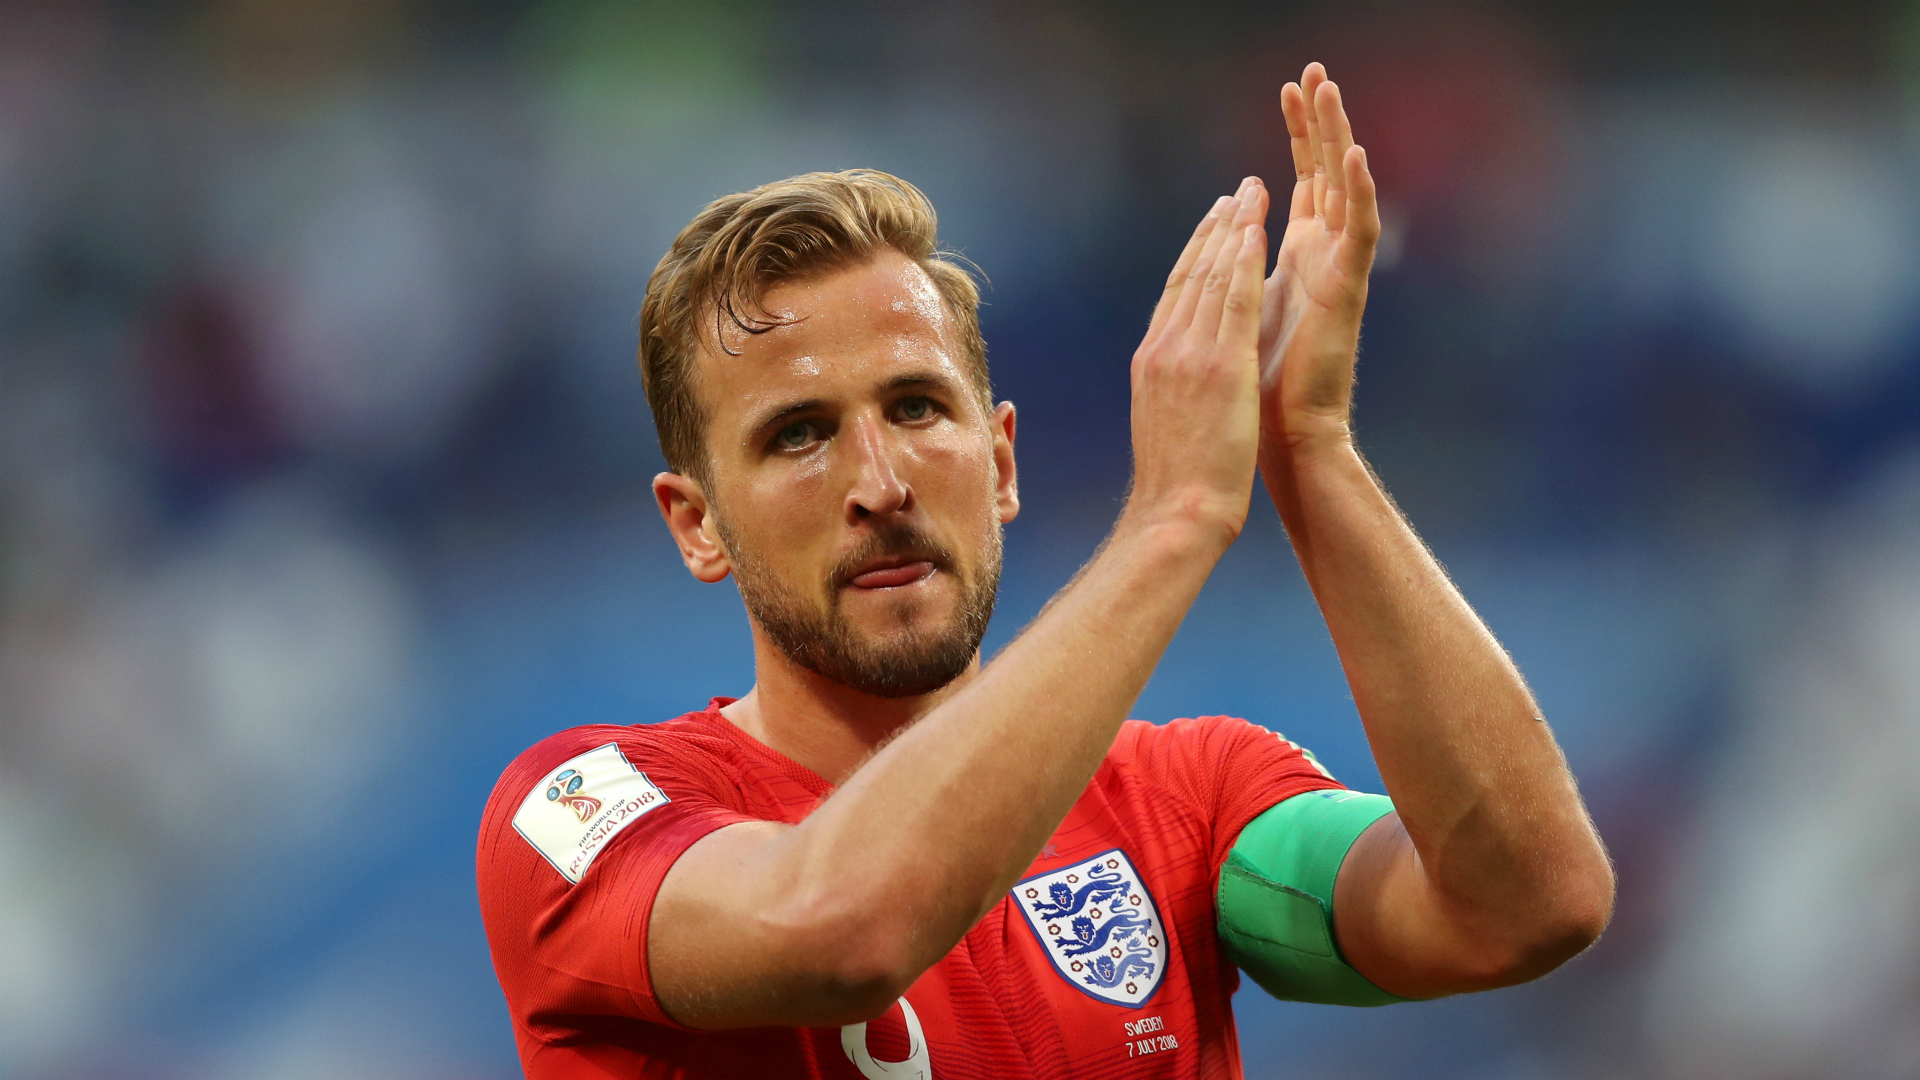 England's Kane misses out on golden shot at World Cup title